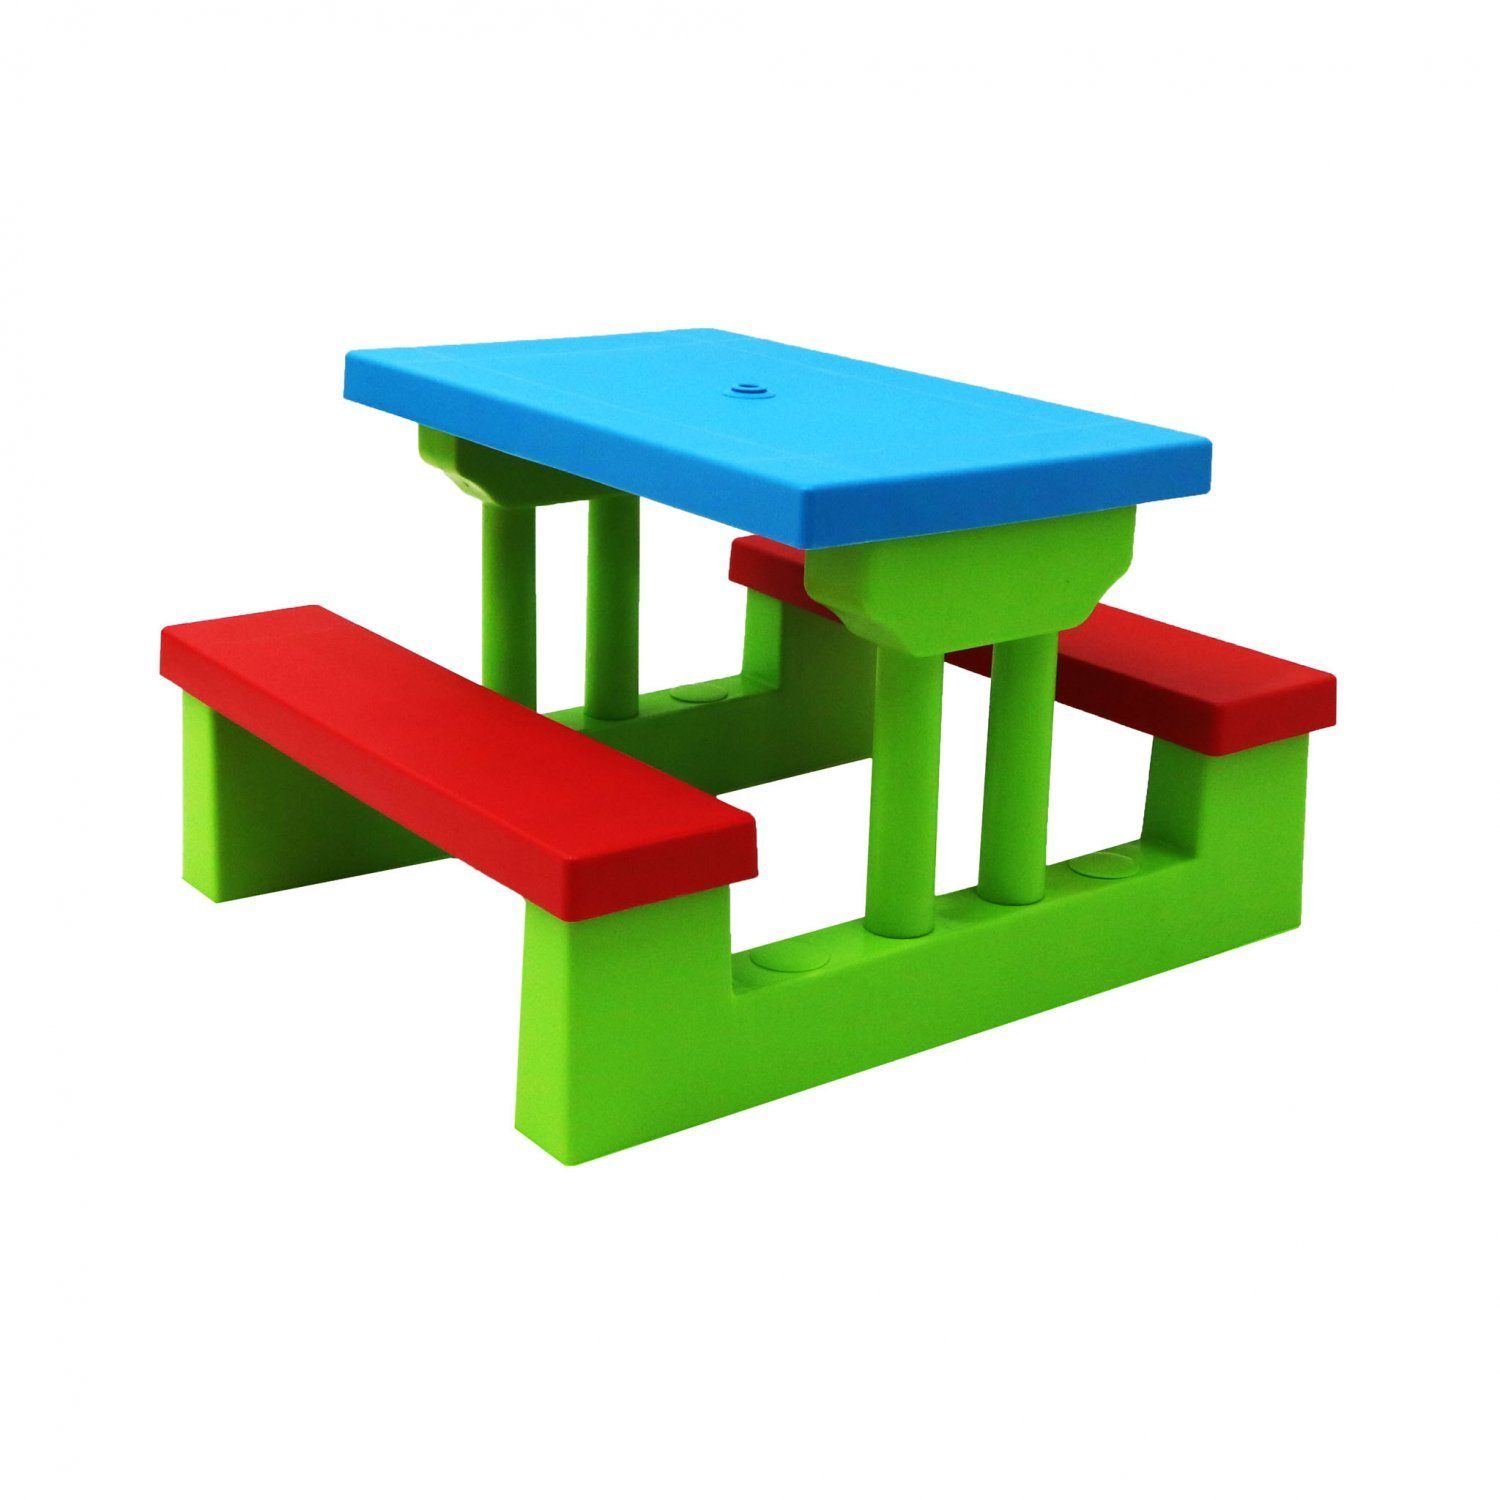 Phenomenal Kids Childrens Picnic Bench Table Set Outdoor Furniture Download Free Architecture Designs Scobabritishbridgeorg